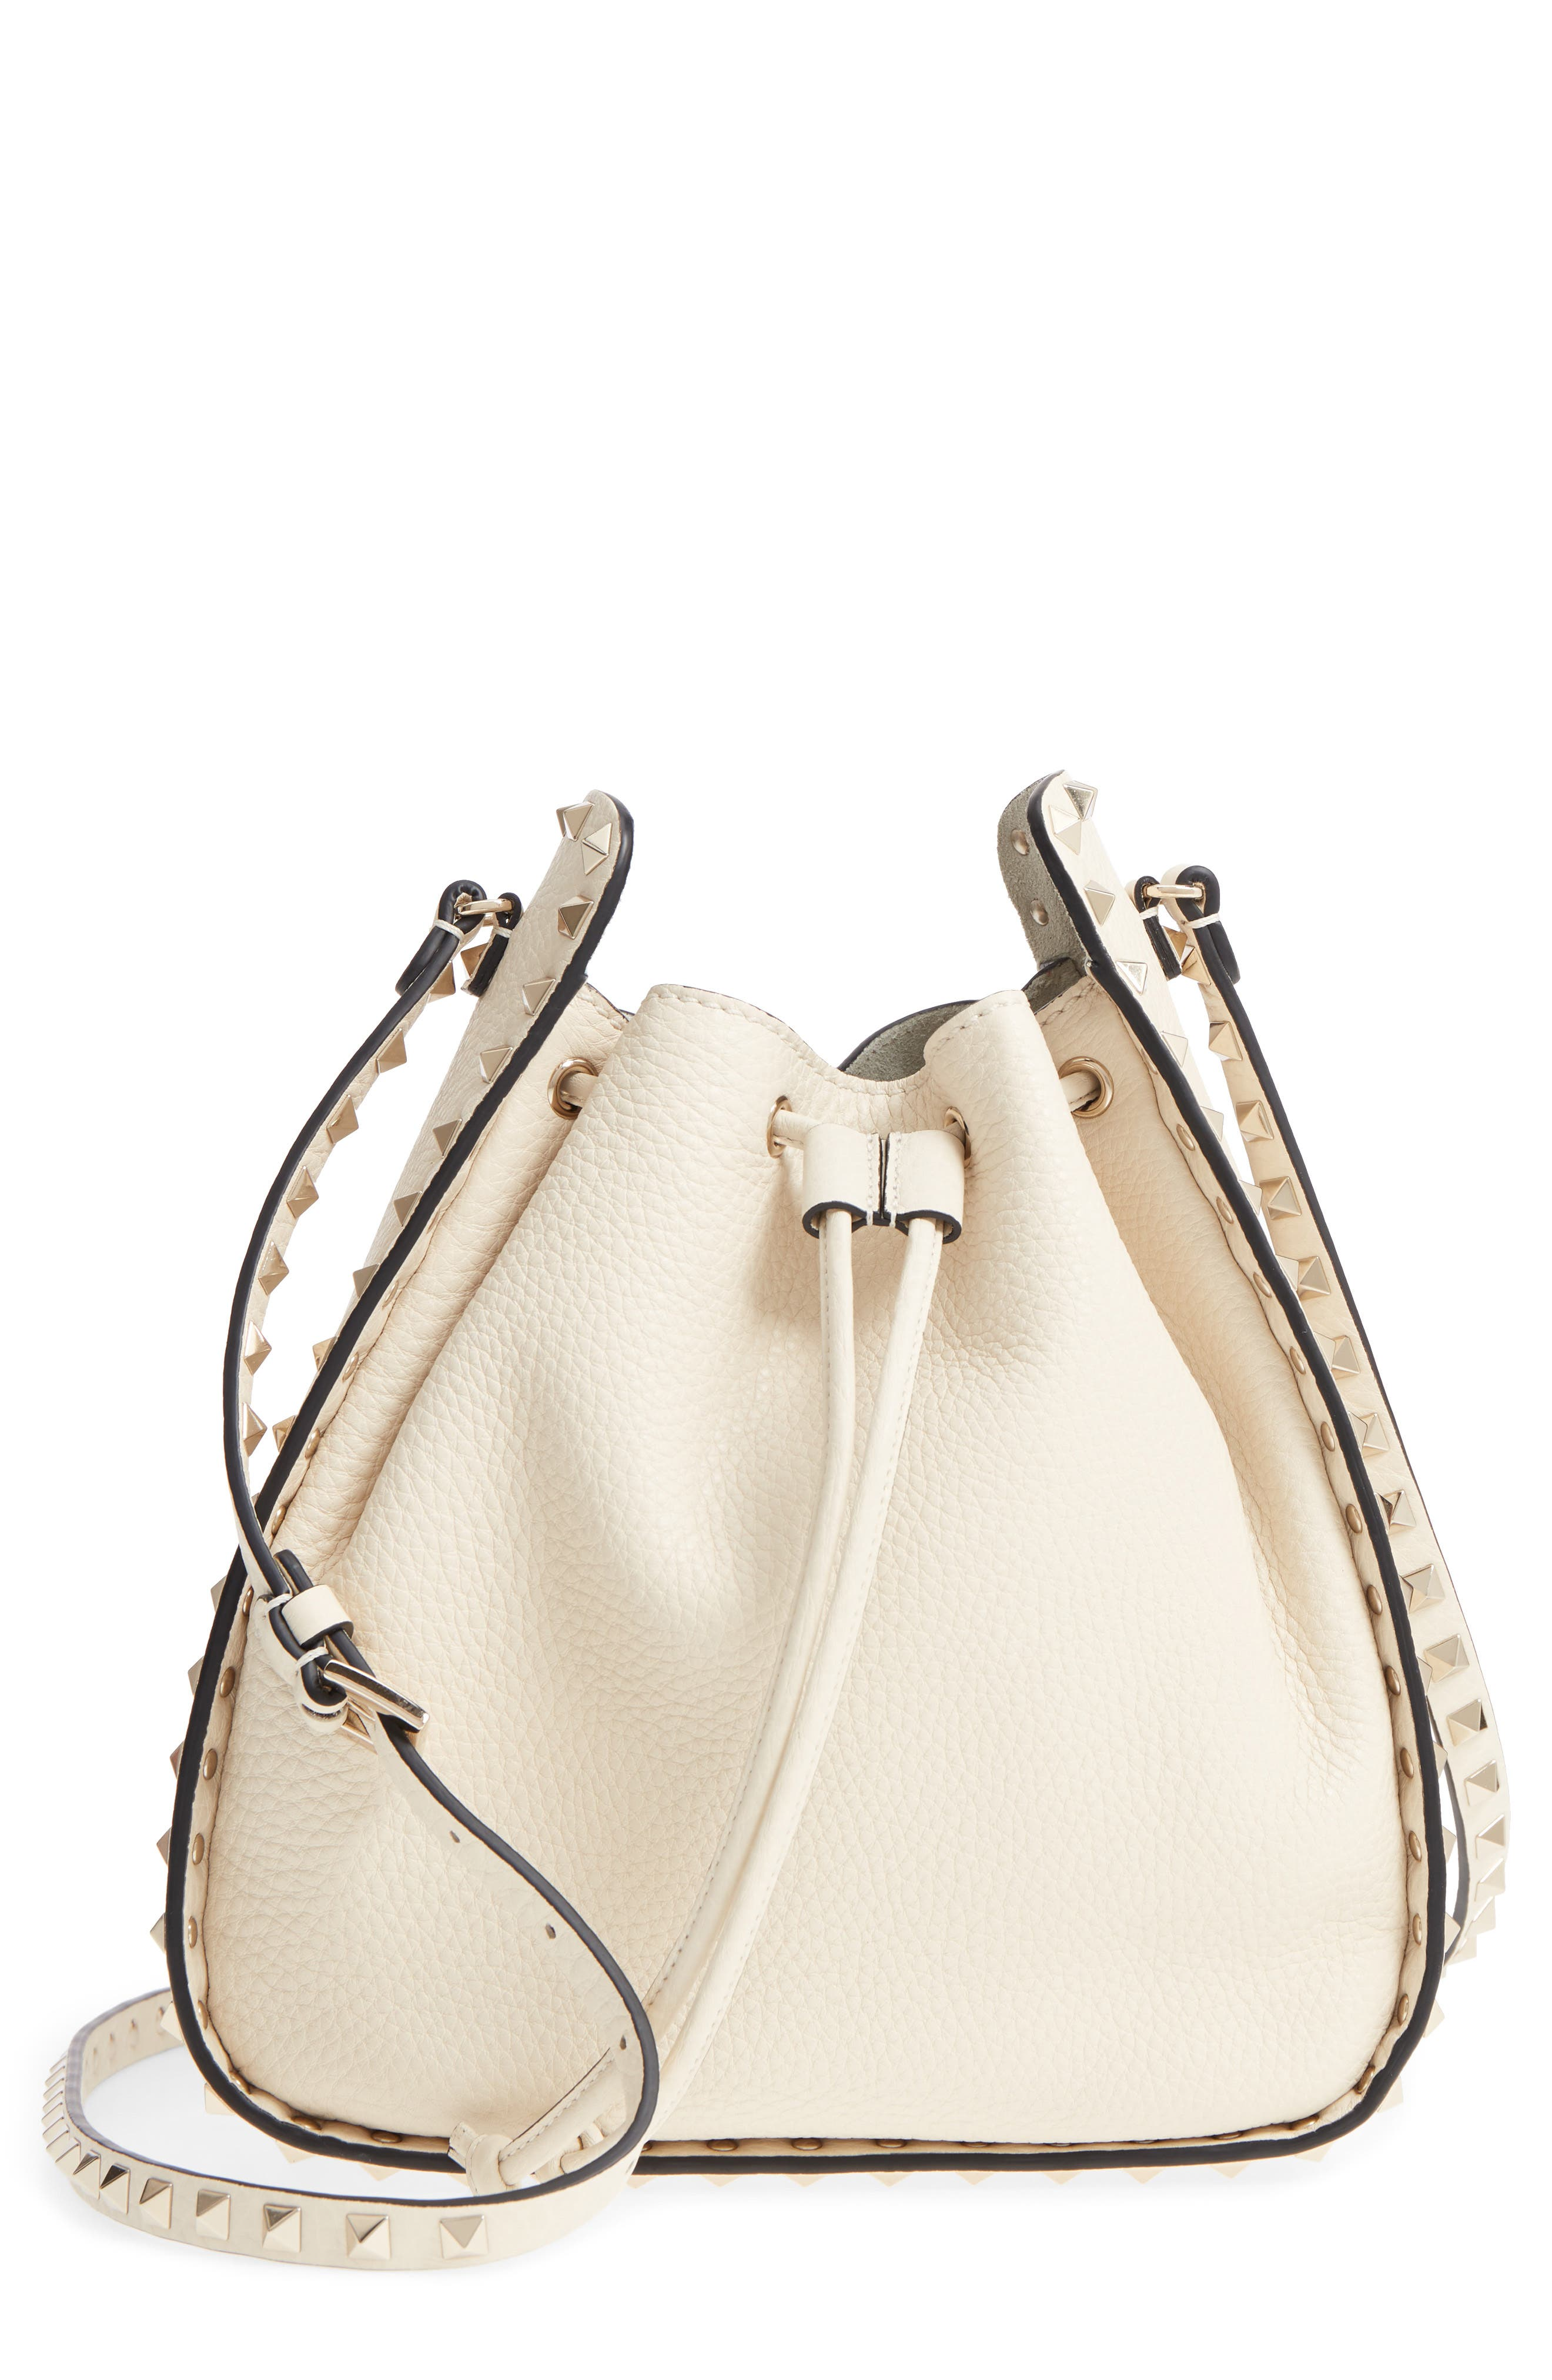 Large Rockstud Leather Bucket Bag,                             Main thumbnail 1, color,                             Ivory/ Gold